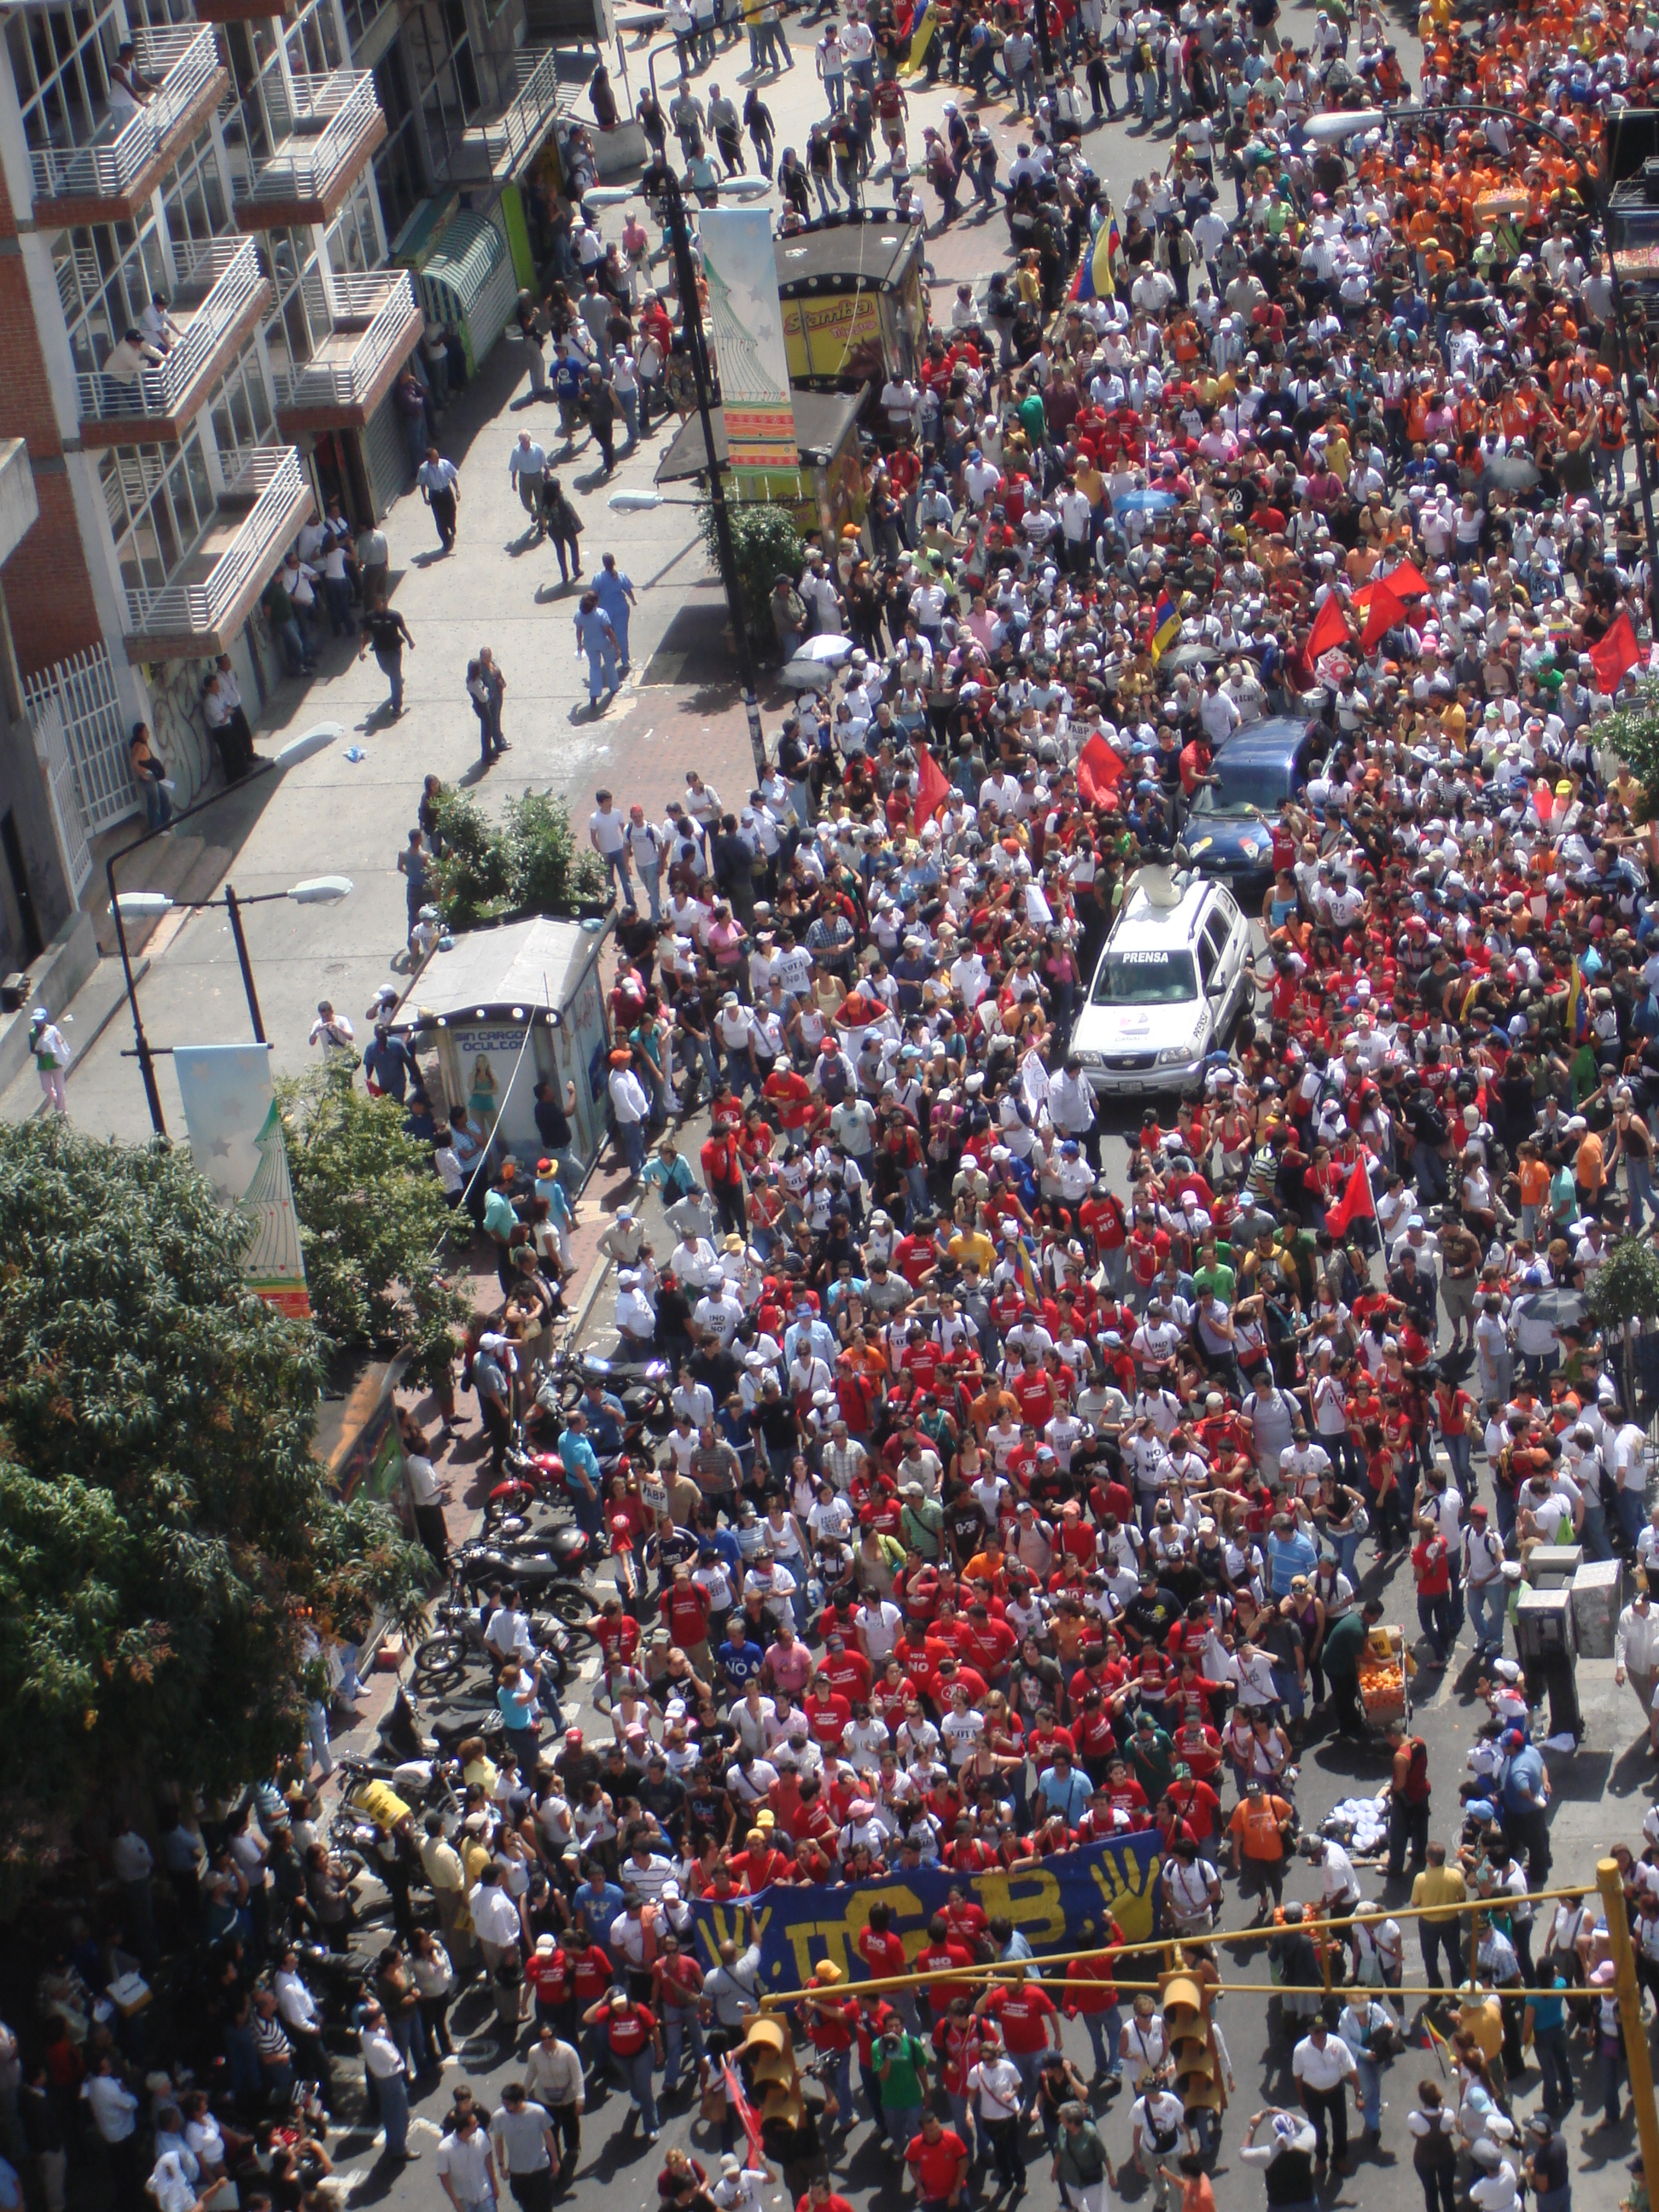 Students from the Universidad Católica Andrés Bello protesting in 2009<br />  Credit: René Reinsberg